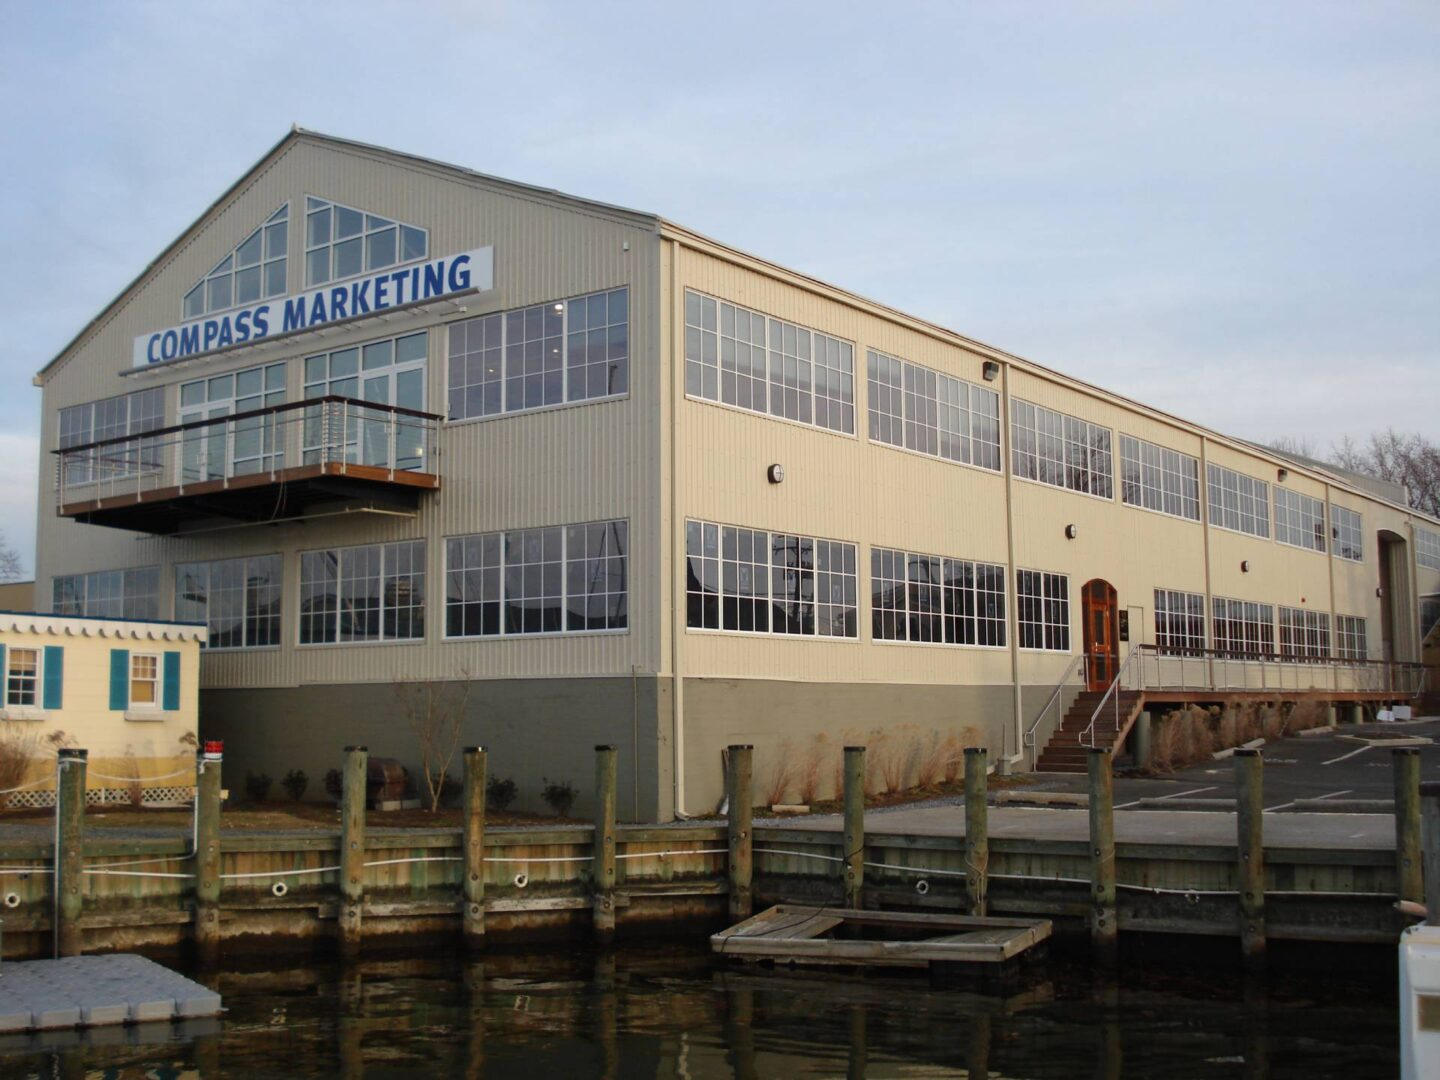 In 2007, The Big Shed, an old boat building structure on Spa Creek in Annapolis, is converted to Class A office space with a maritime flair.